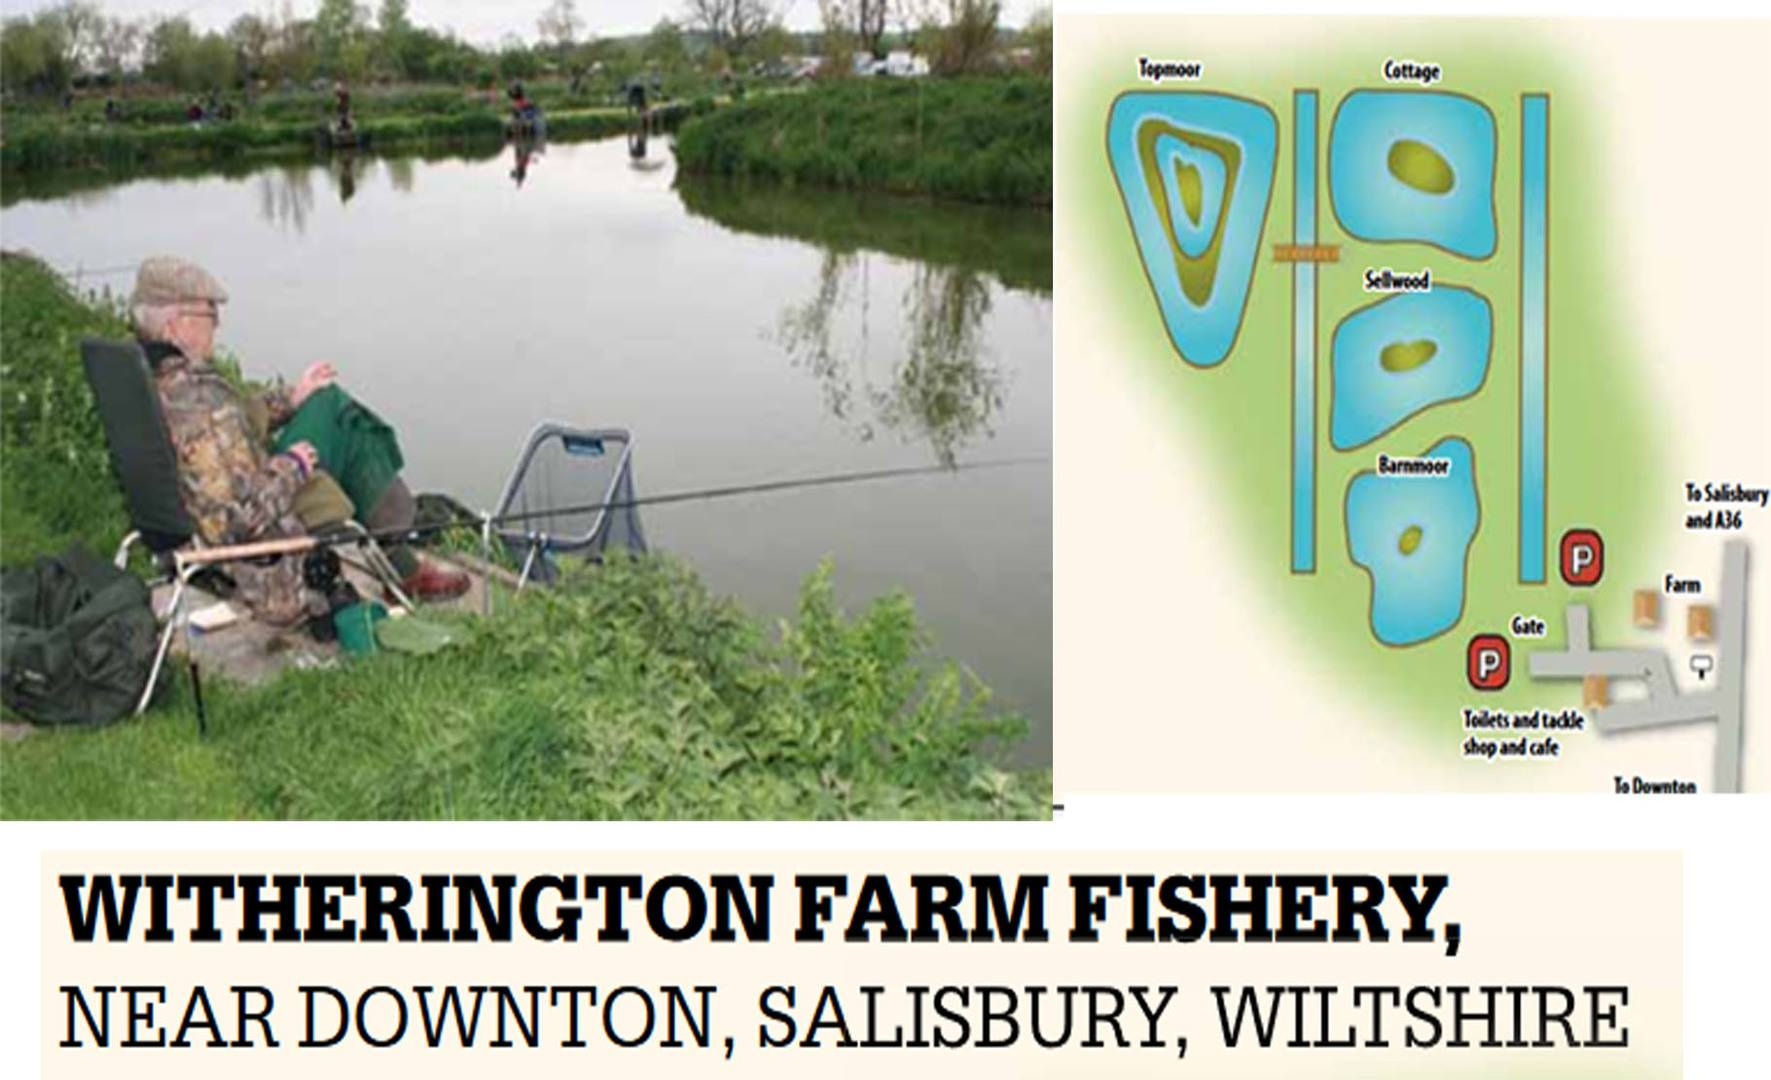 Information and map advertising Witherington Farm Fishery